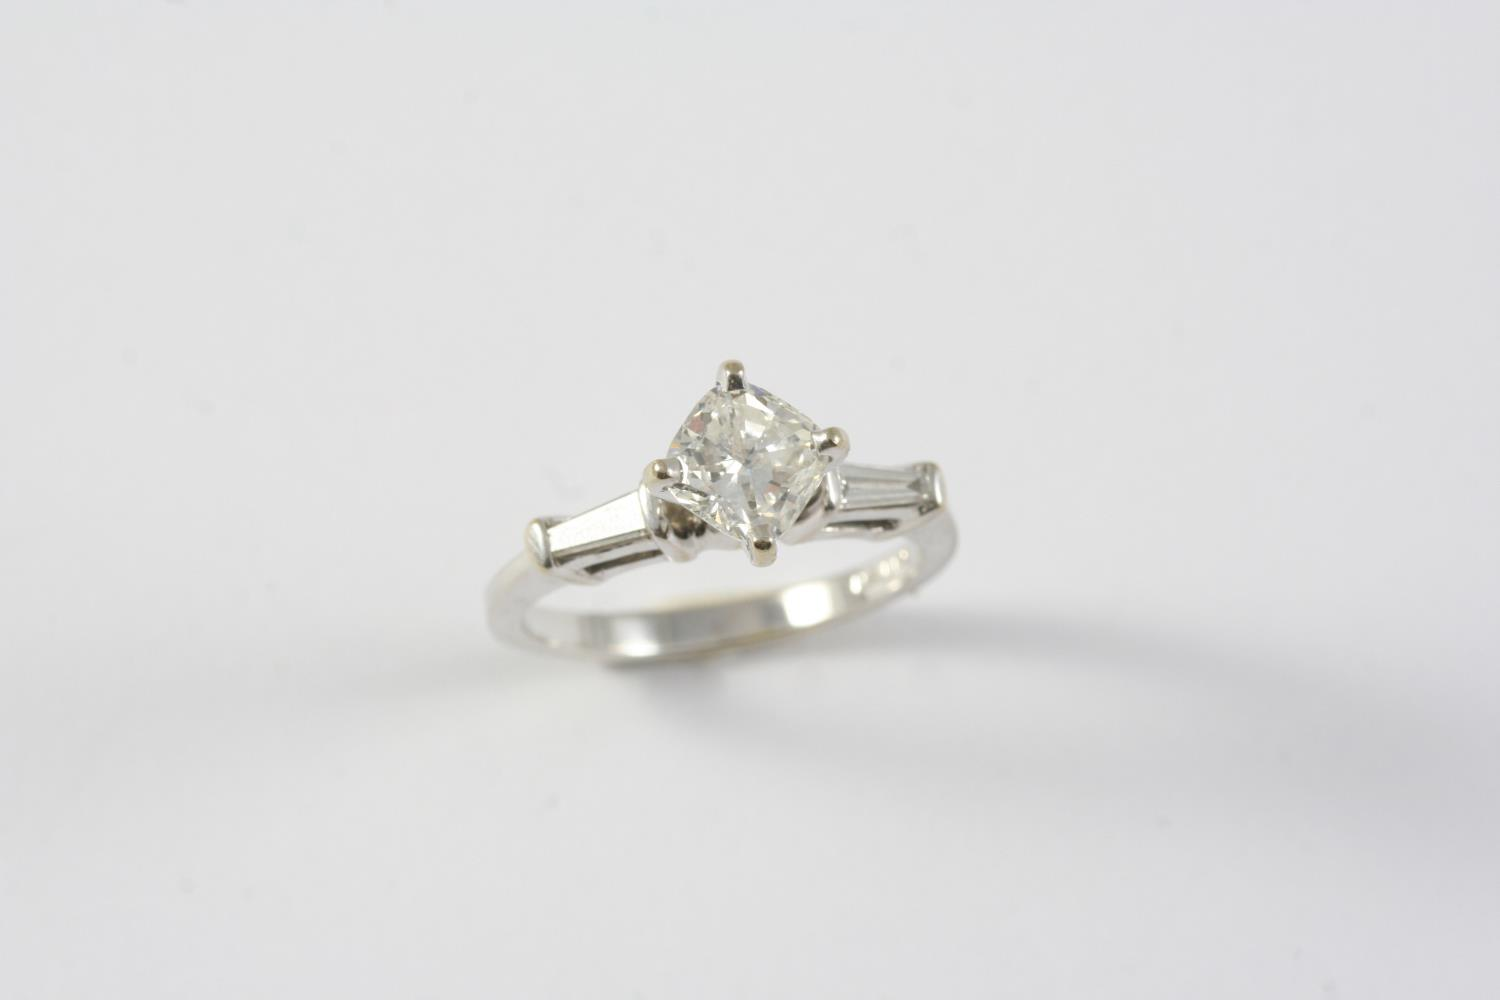 A DIAMOND SOLITARIE RING the cushion-shaped diamond is set with a tapered baguette-cut diamond to